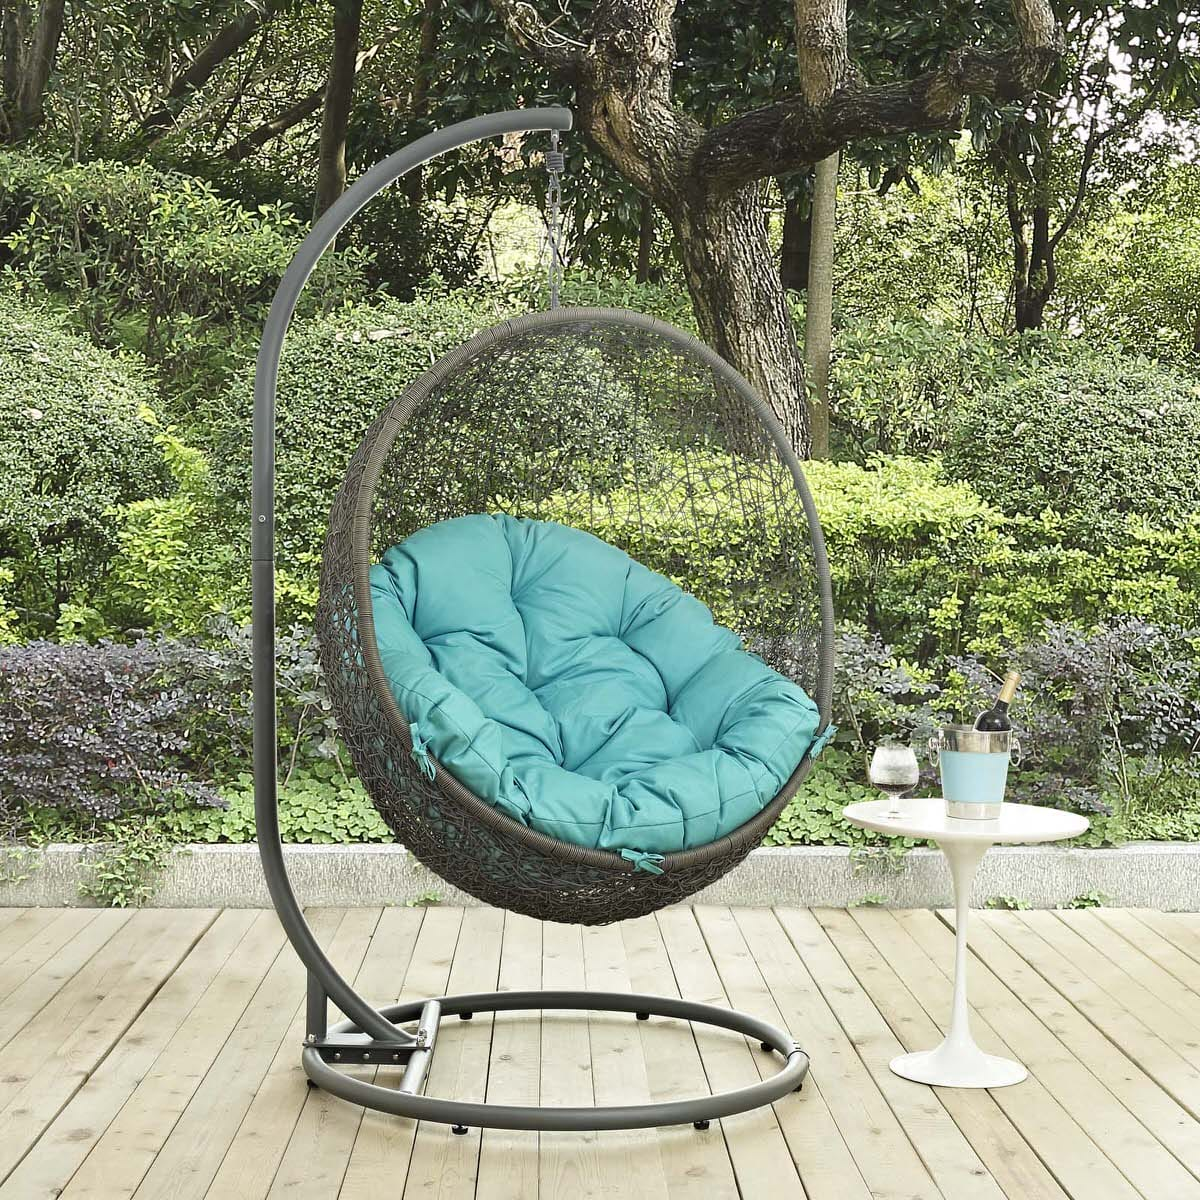 hide outdoor patio swing chair with stand gray turquoise by modern living - Patio Swing Chair